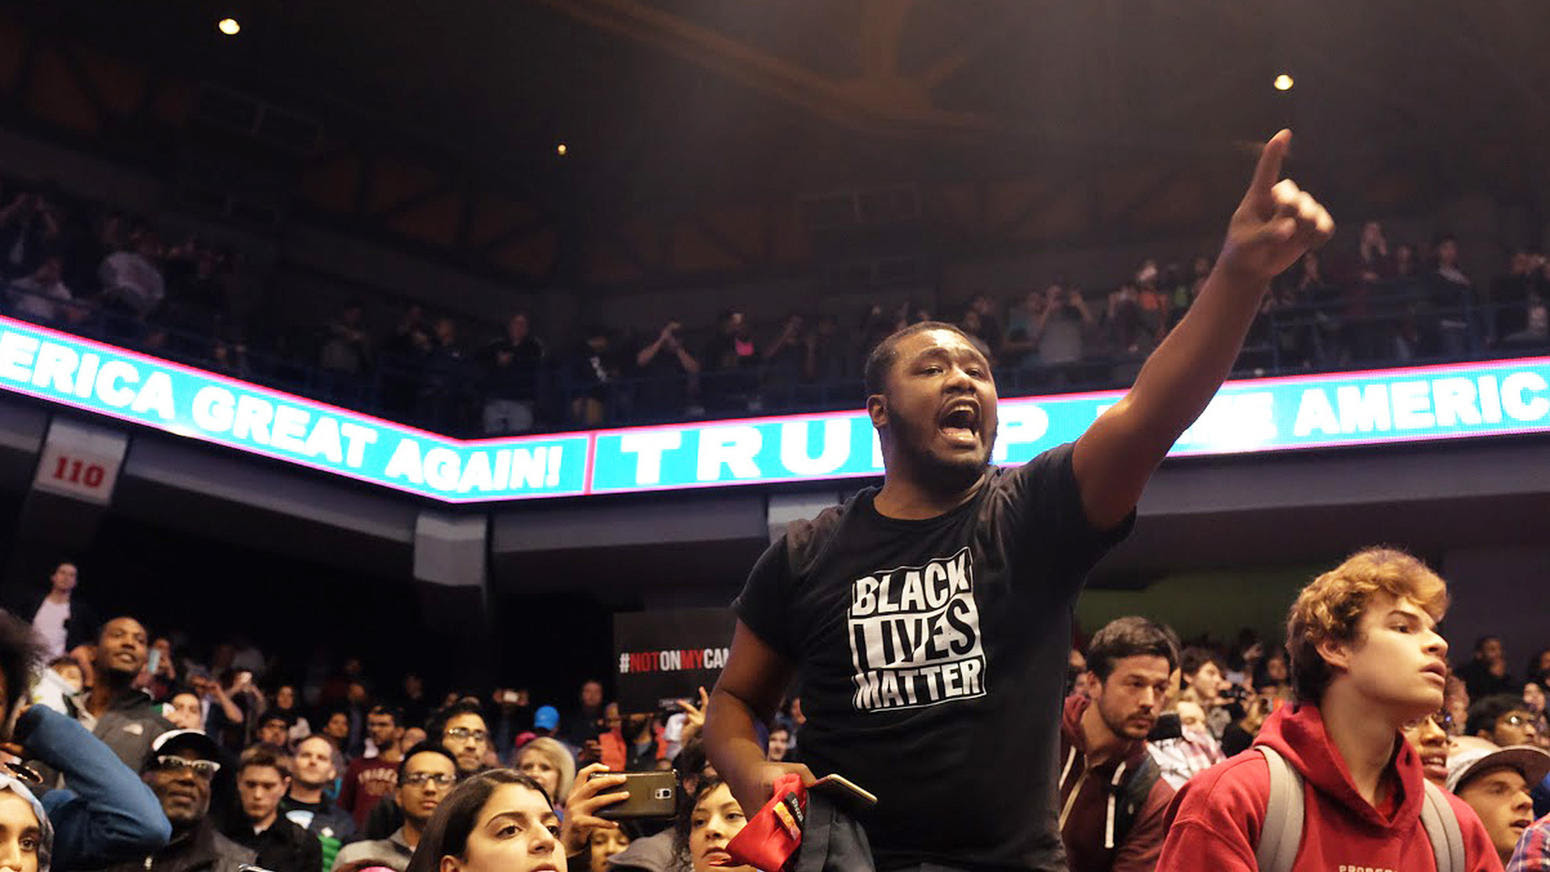 Protesters inside the UIC Pavilion